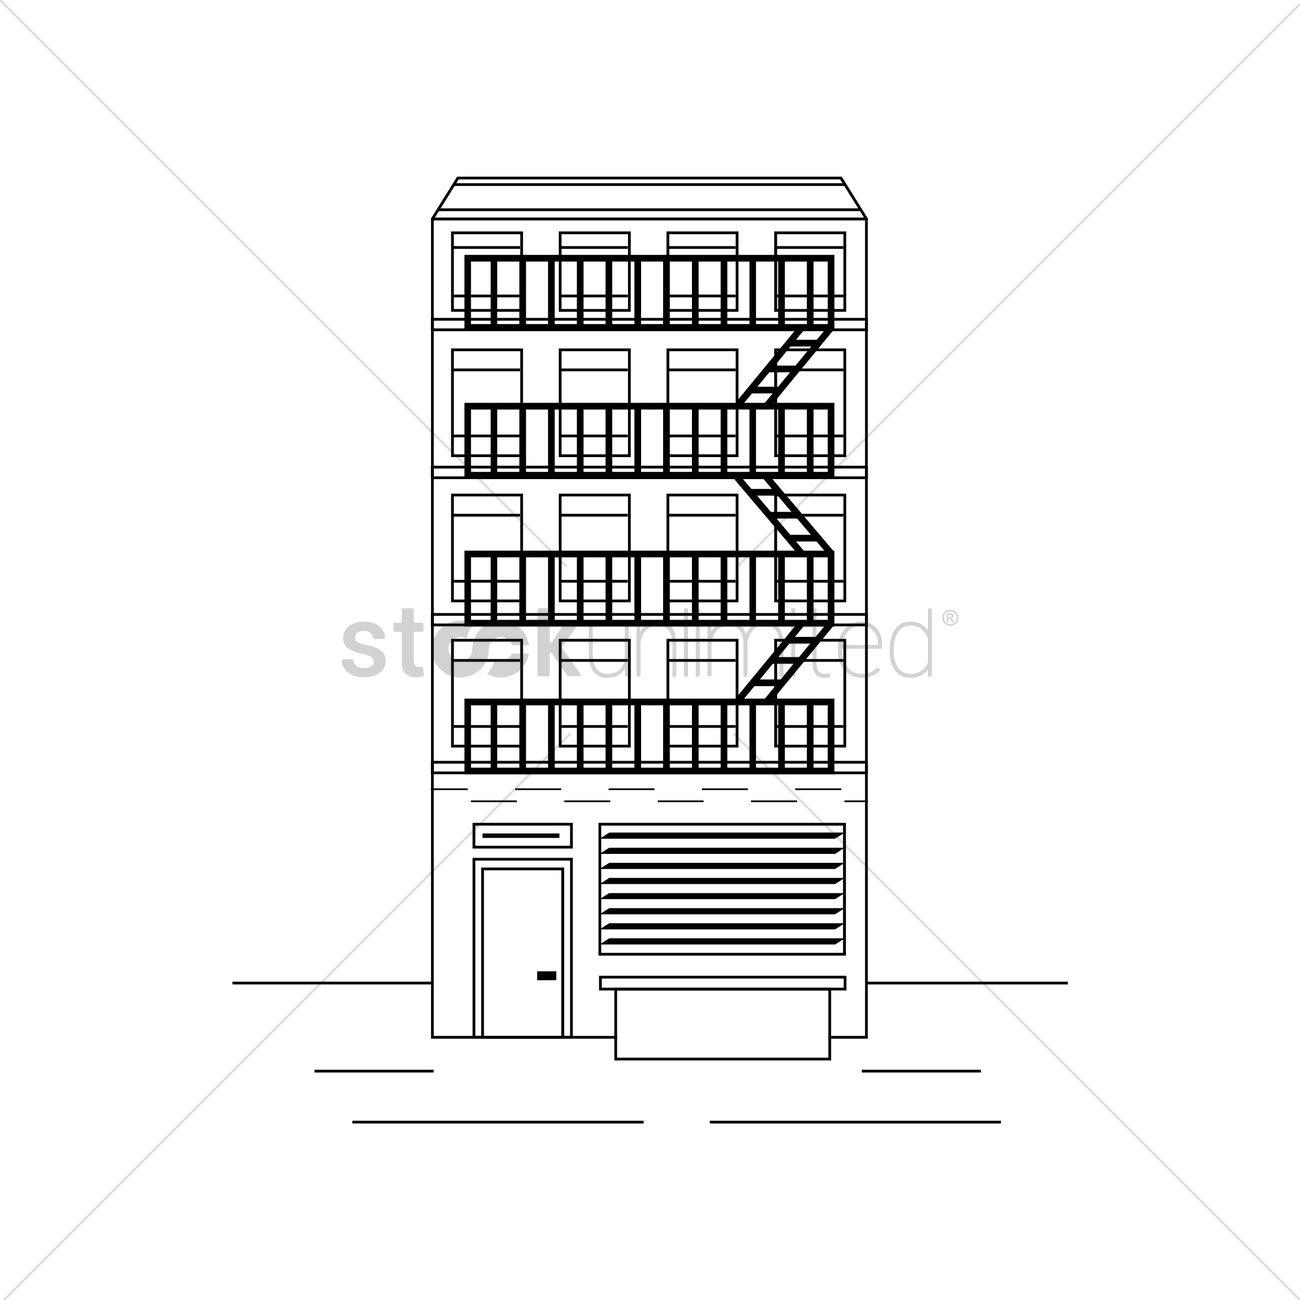 Apartment Building Graphic new york apartment building vector image - 1547445 | stockunlimited